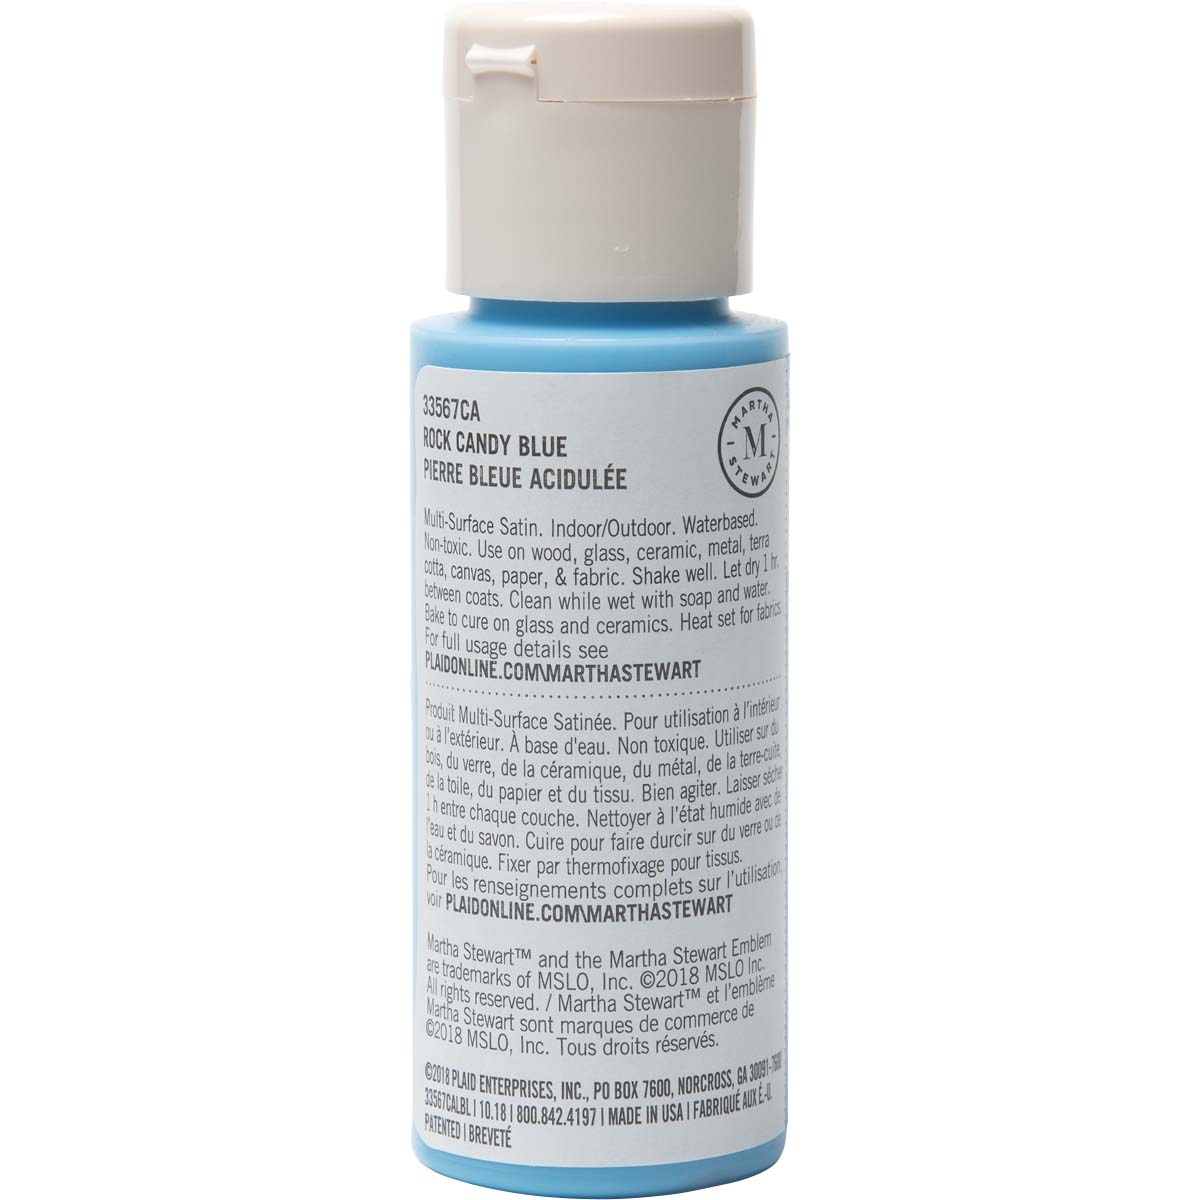 Martha Stewart ® Multi-Surface Satin Acrylic Craft Paint - Rock Candy Blue, 2 oz. - 33567CA